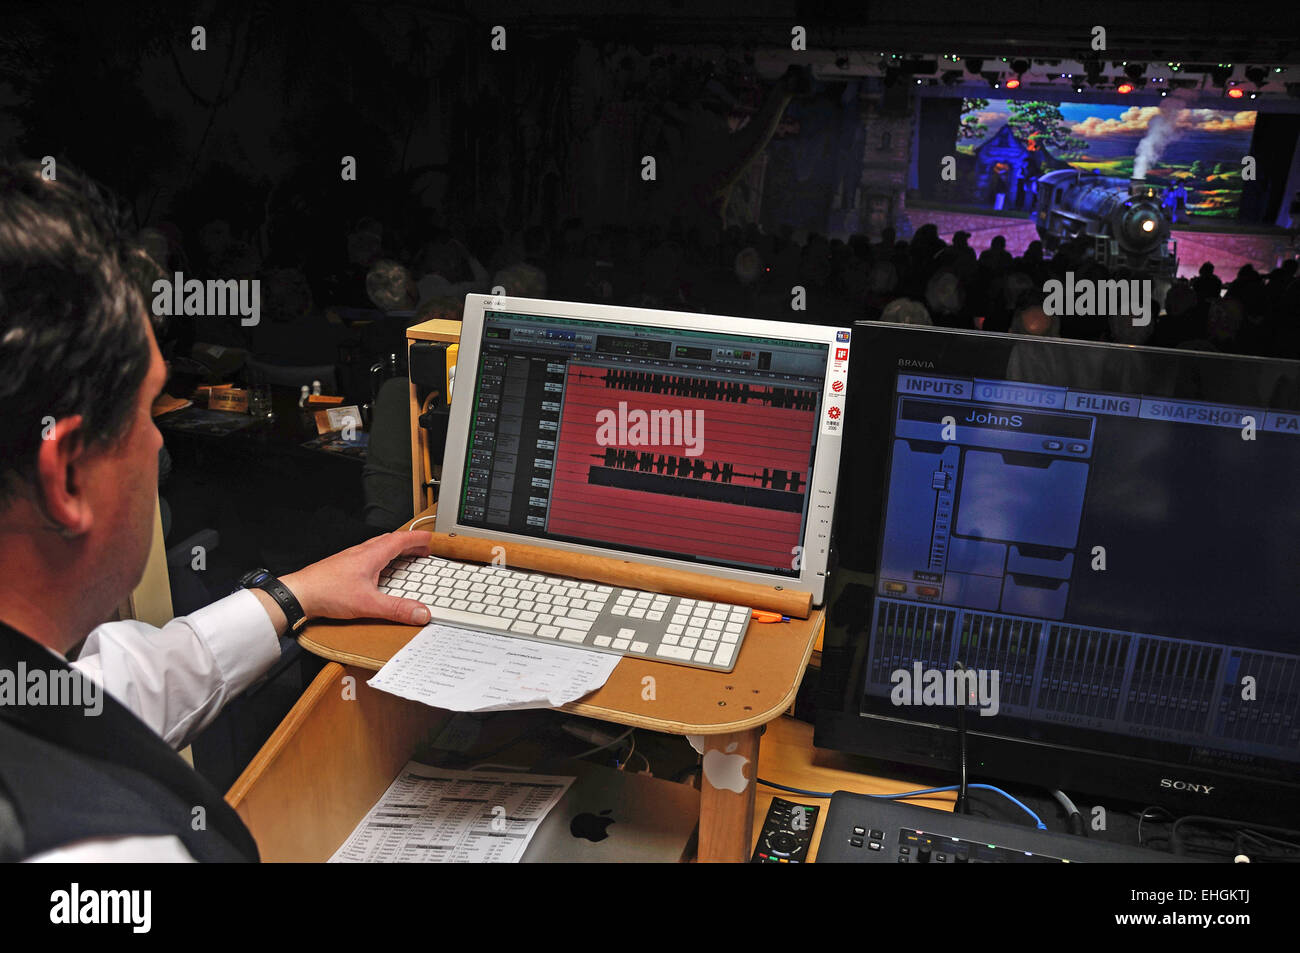 A sound technician adds to the action during a live stage performance - Stock Image